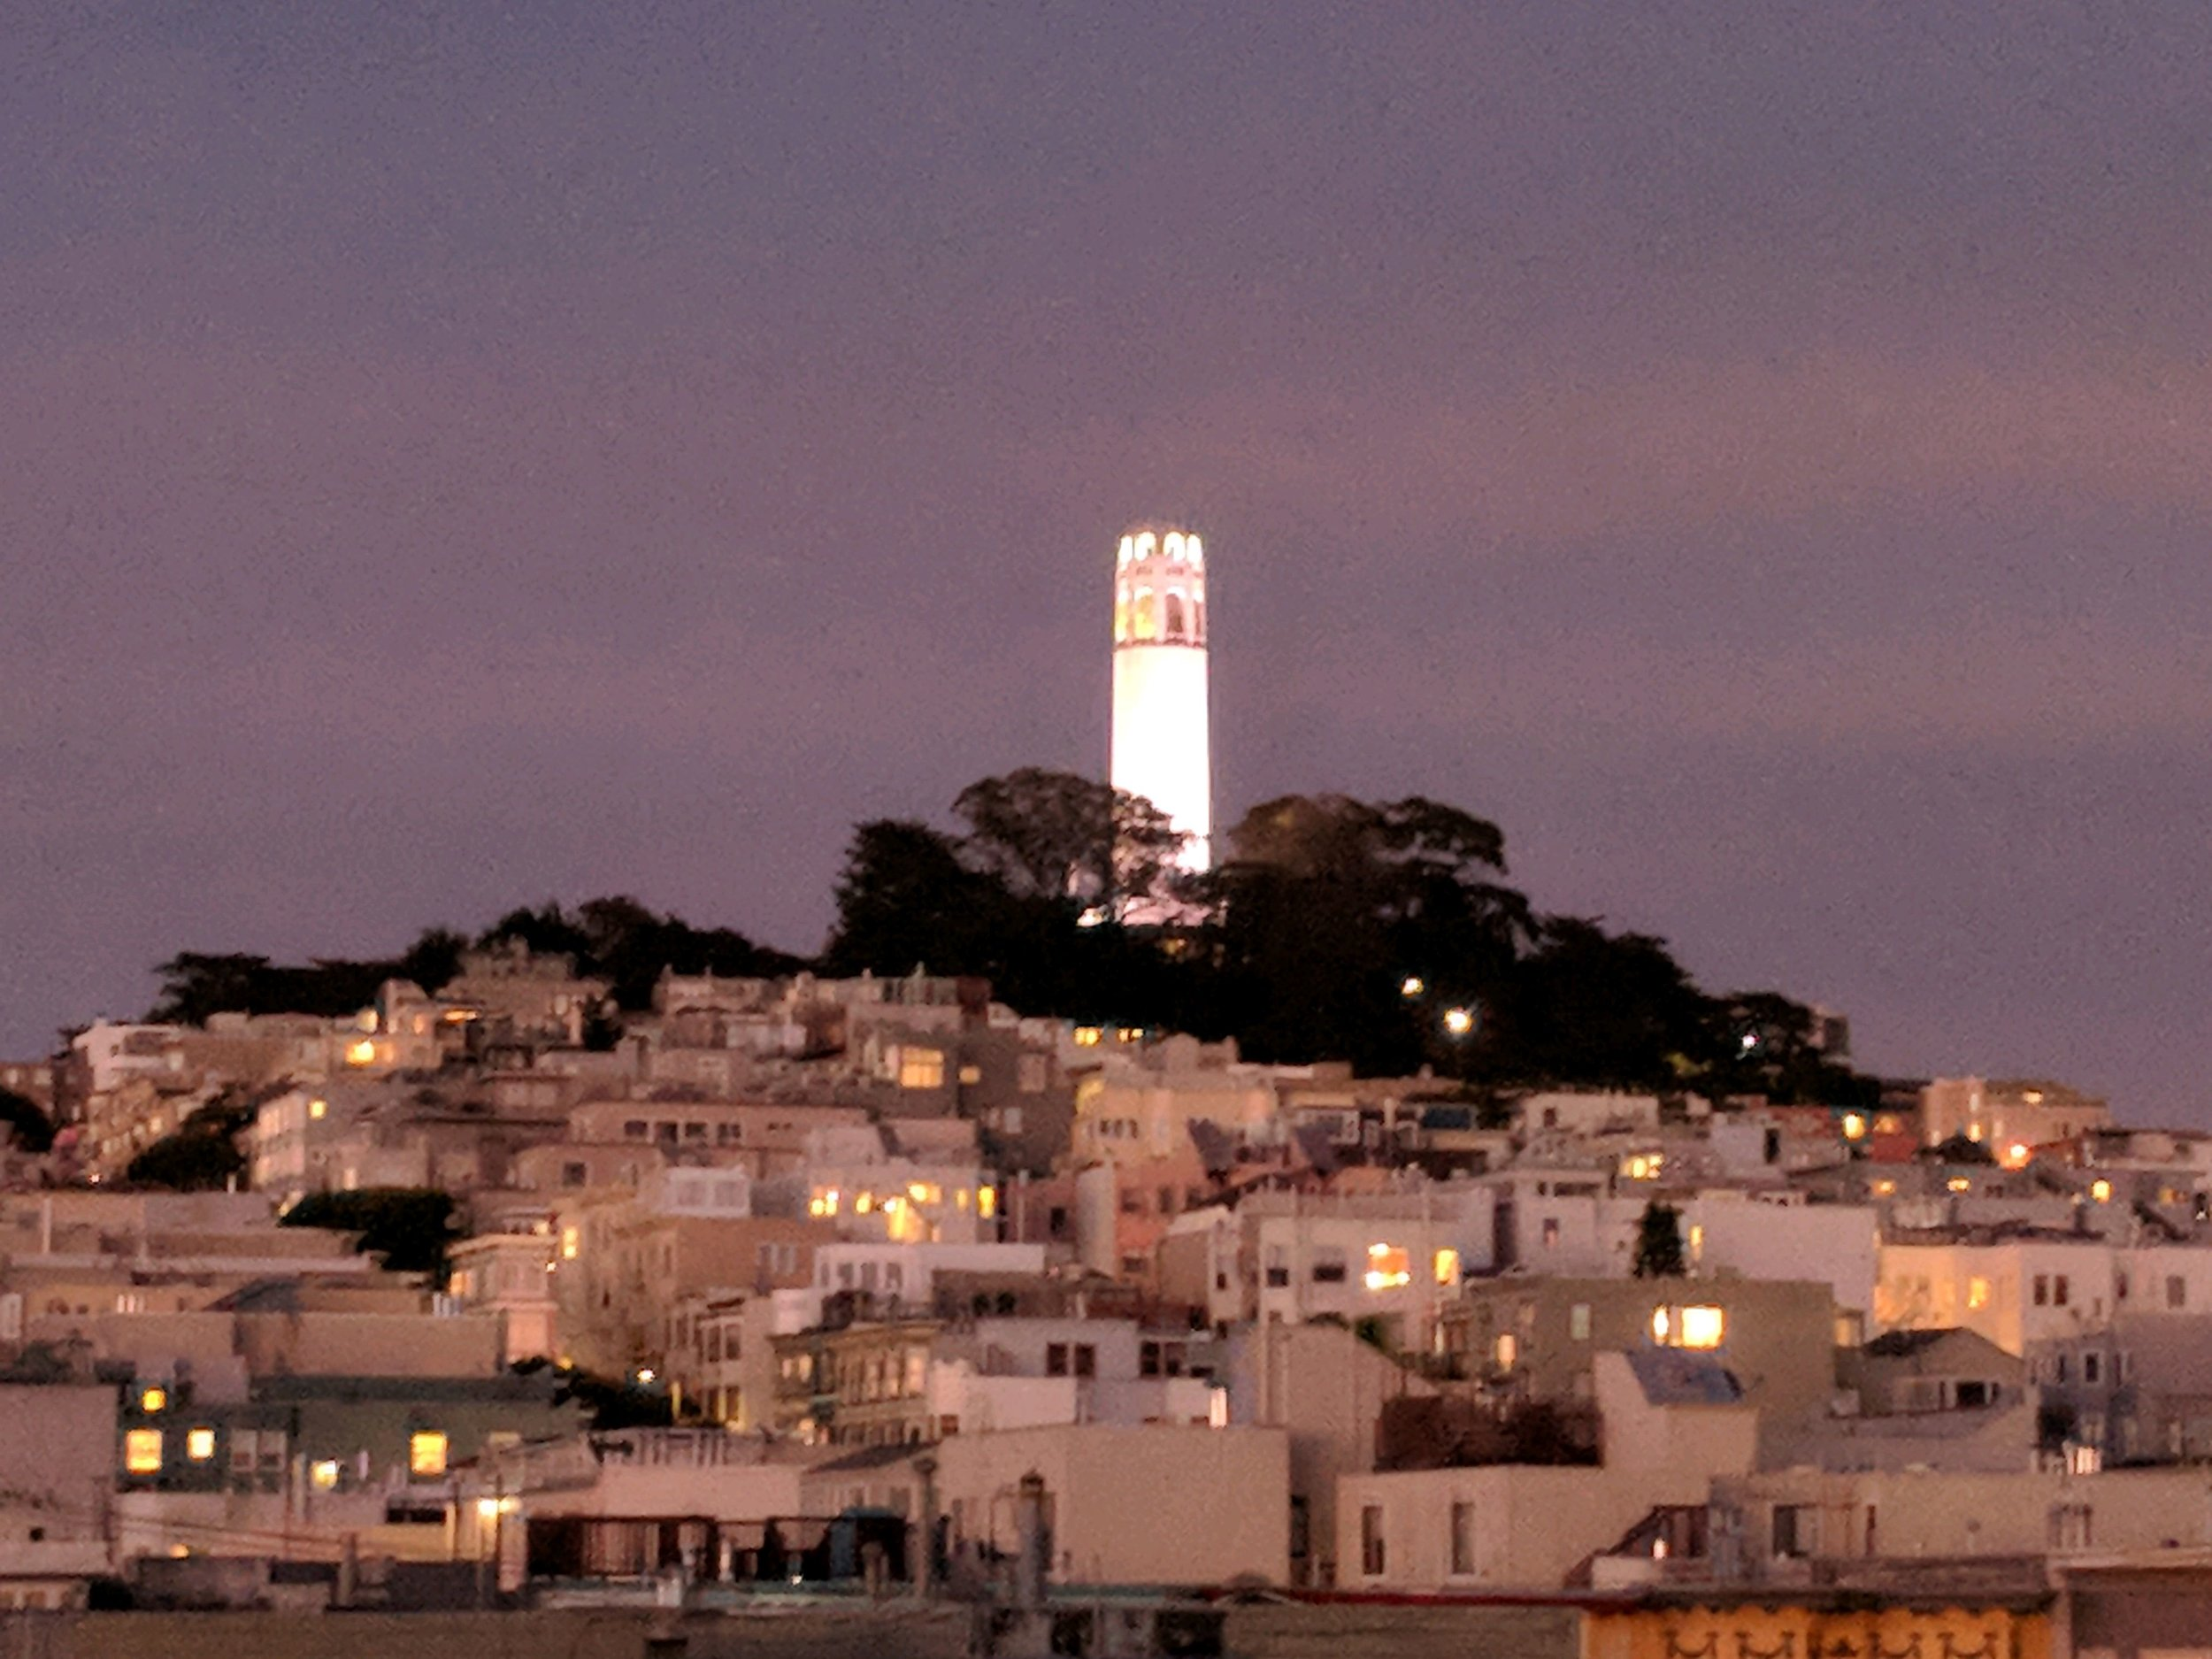 Coit Tower by night.